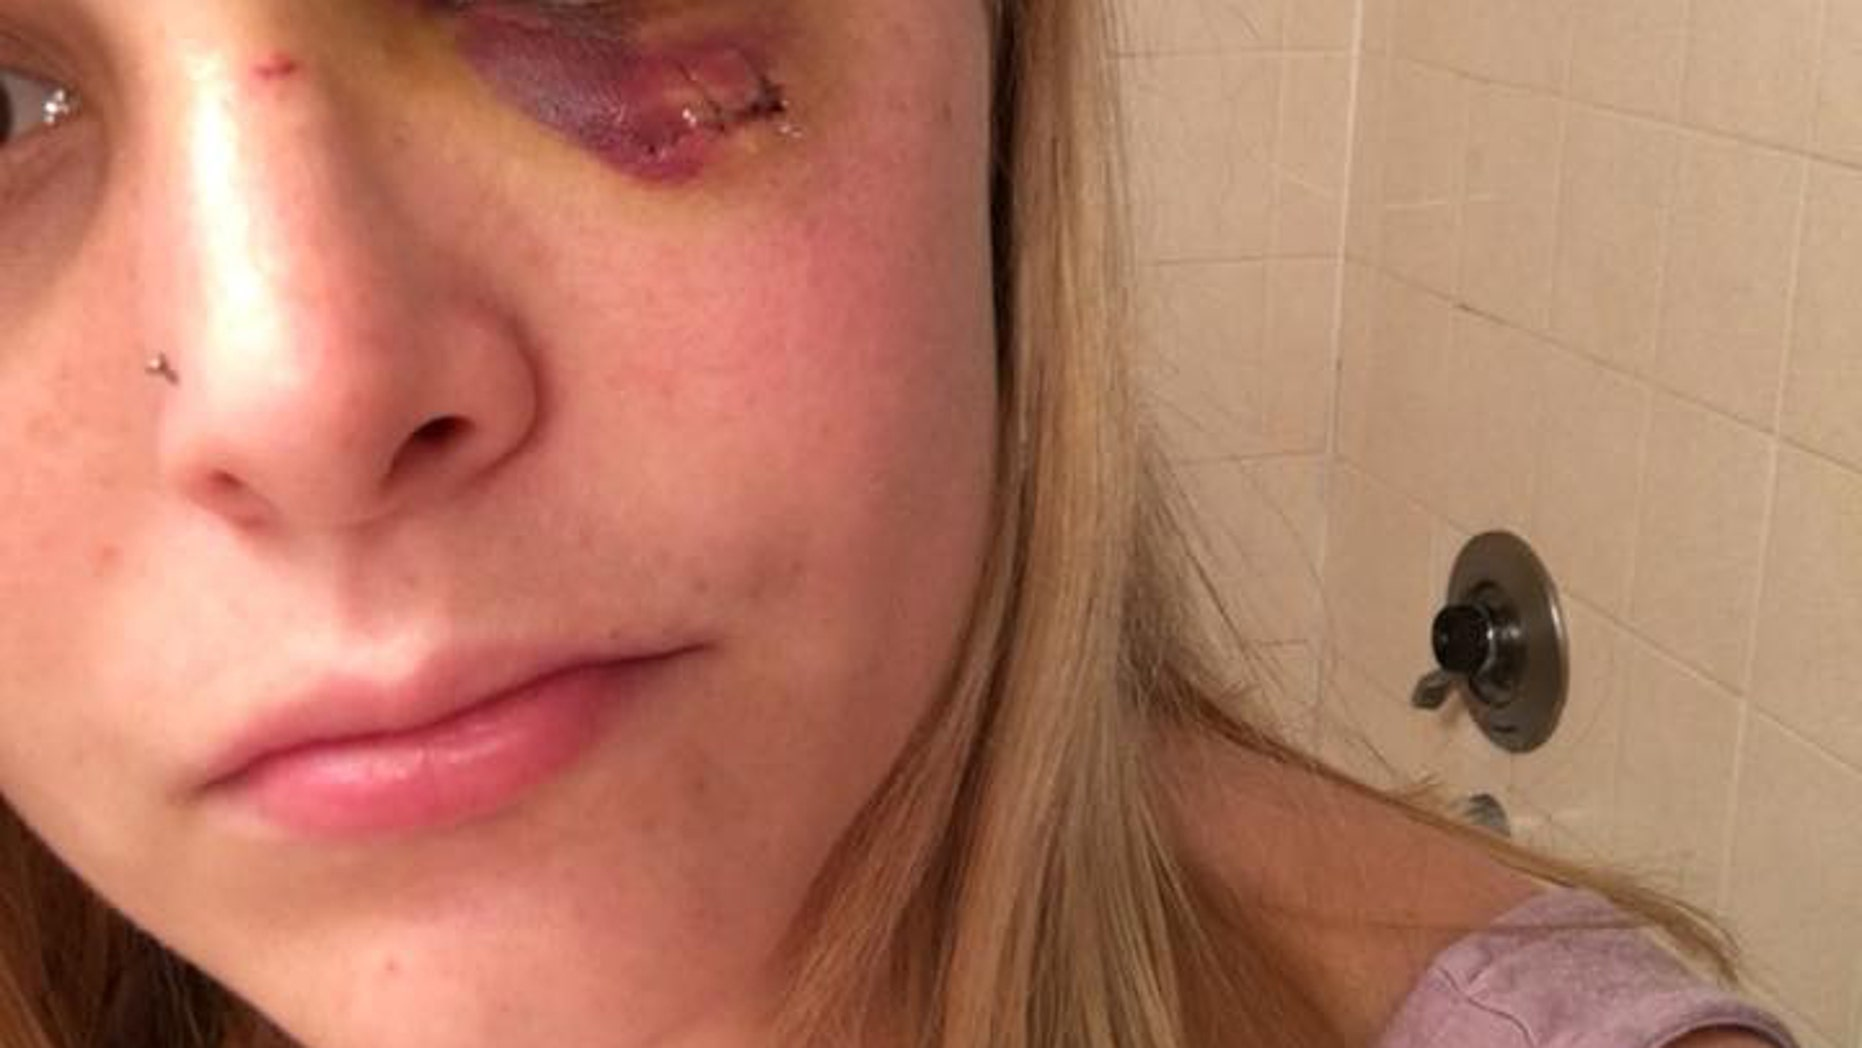 Amanda Comparetto, 23, is hoping to find the man who punched her in the face at a Florida bar.